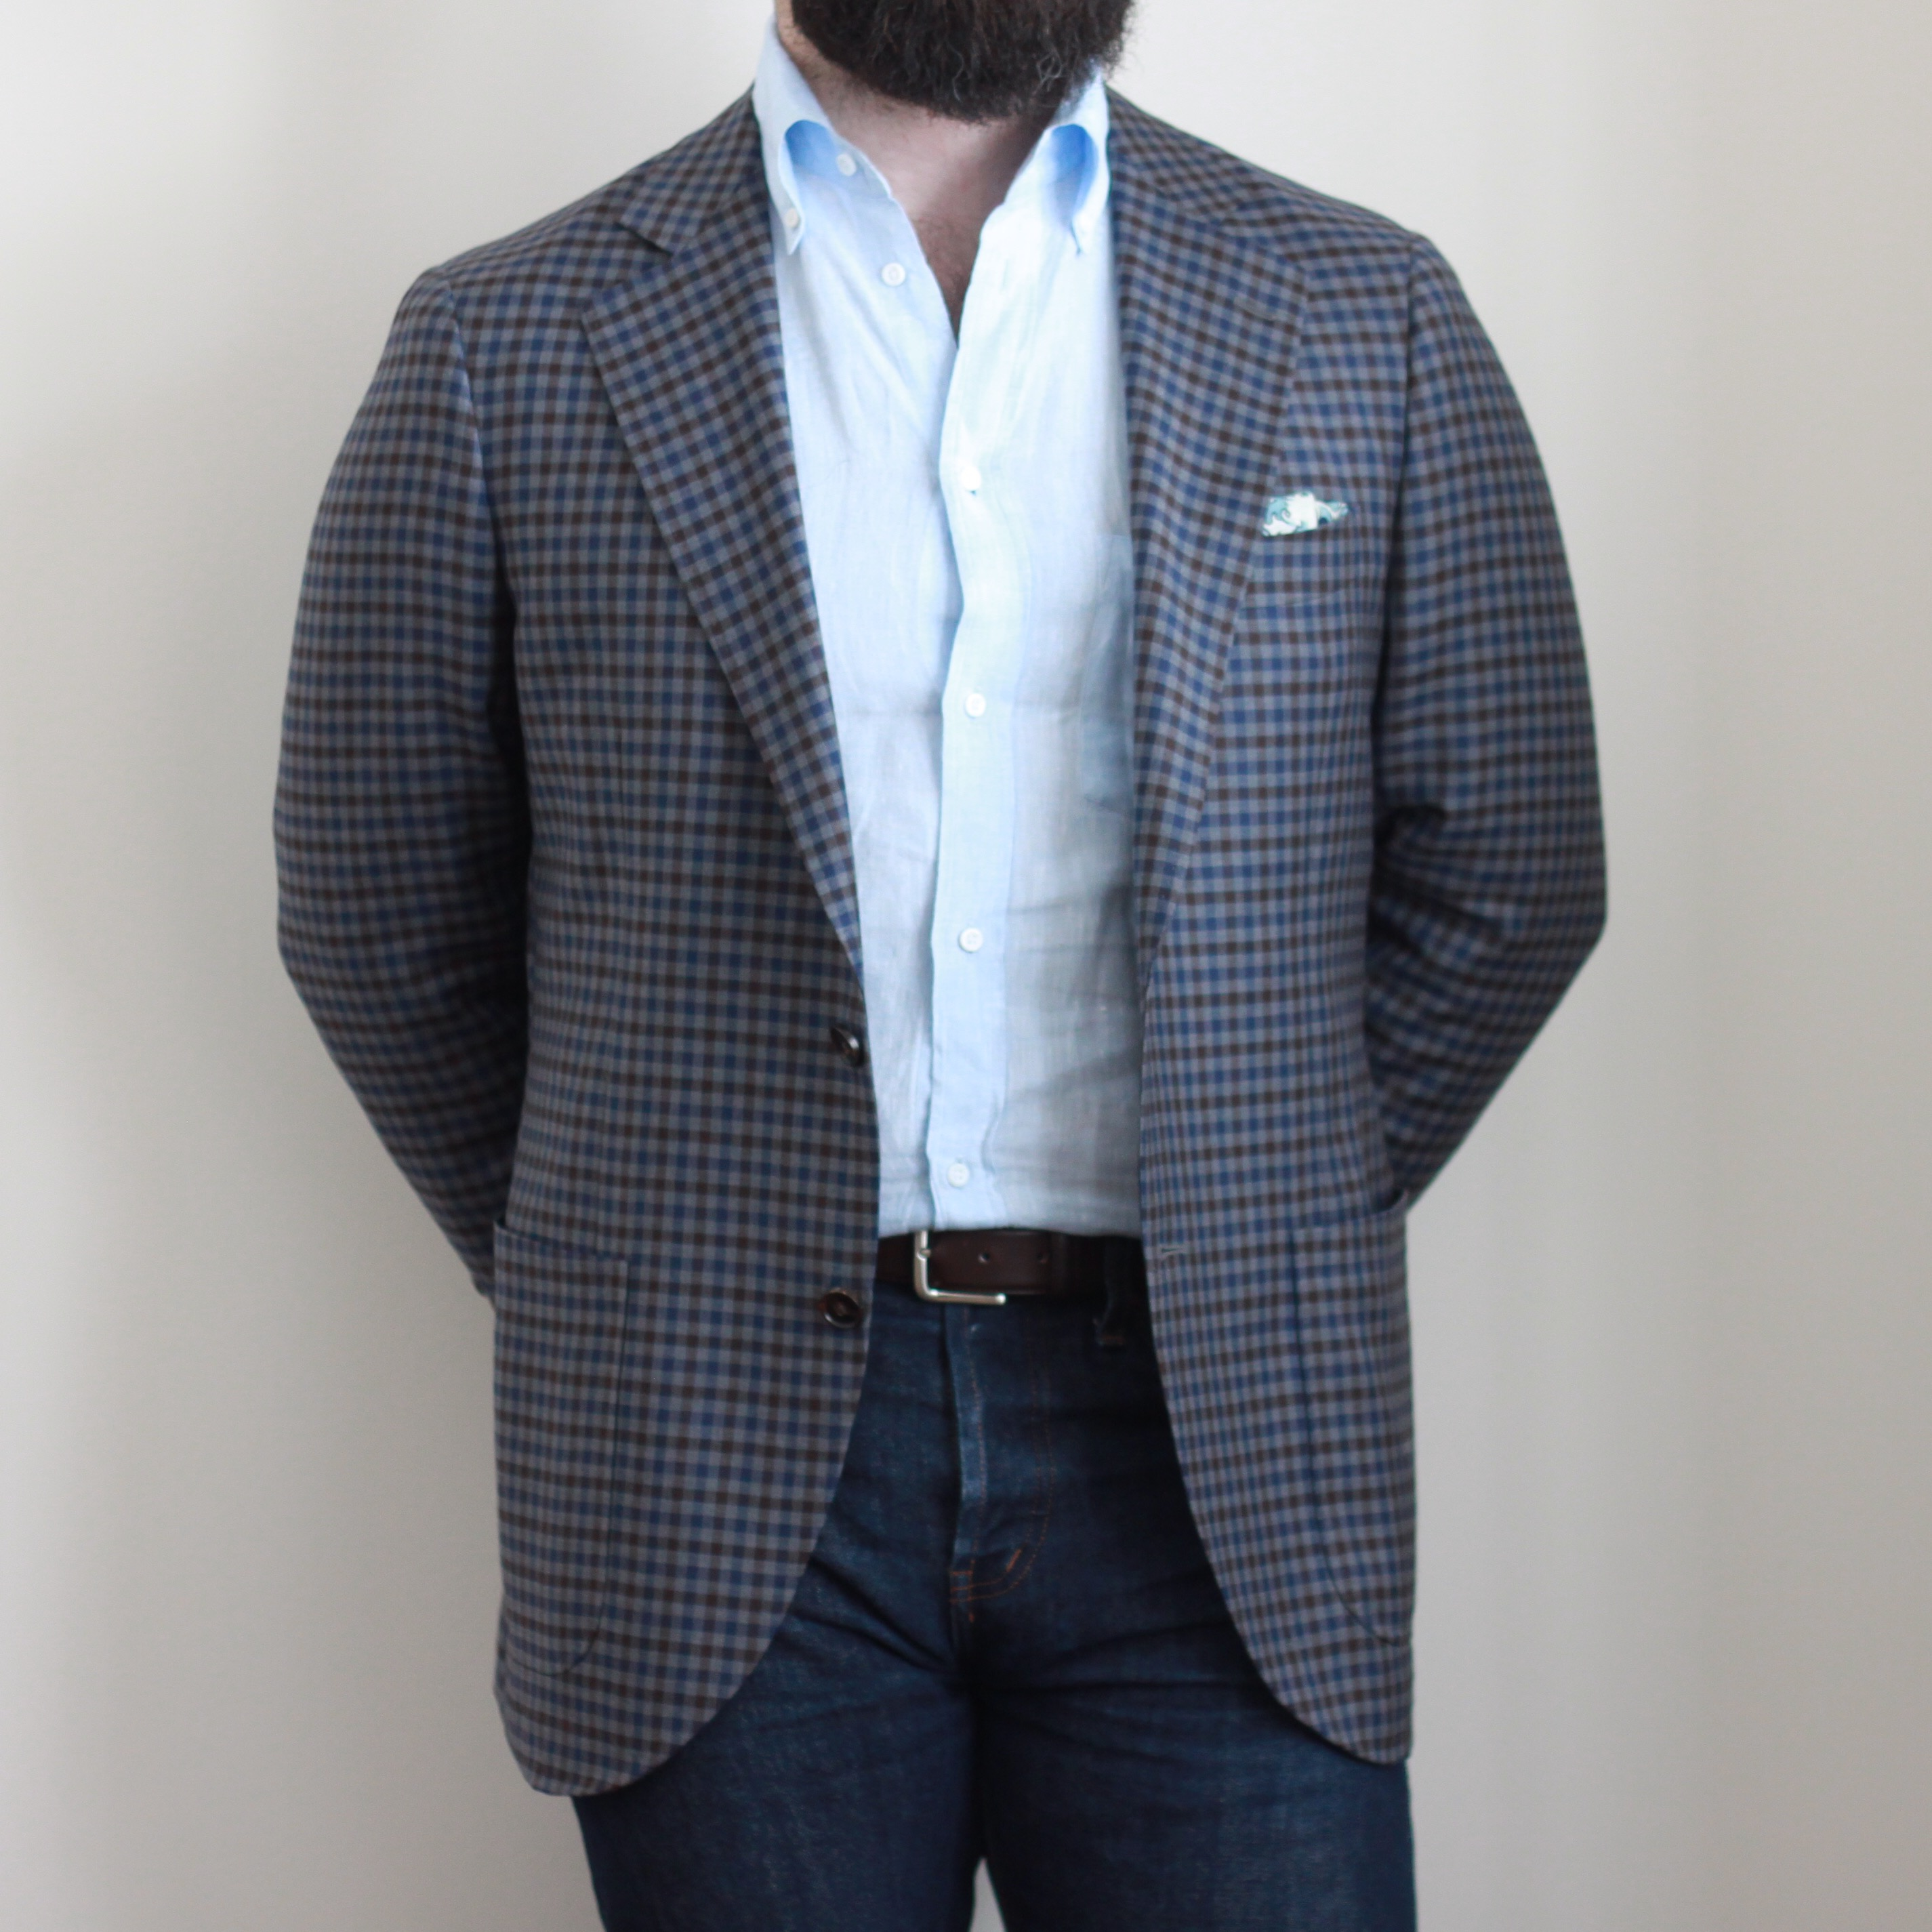 sport coats and jeans, odd jacket, denim, sport coat, jeans, casual, menswear, outfit inspiration